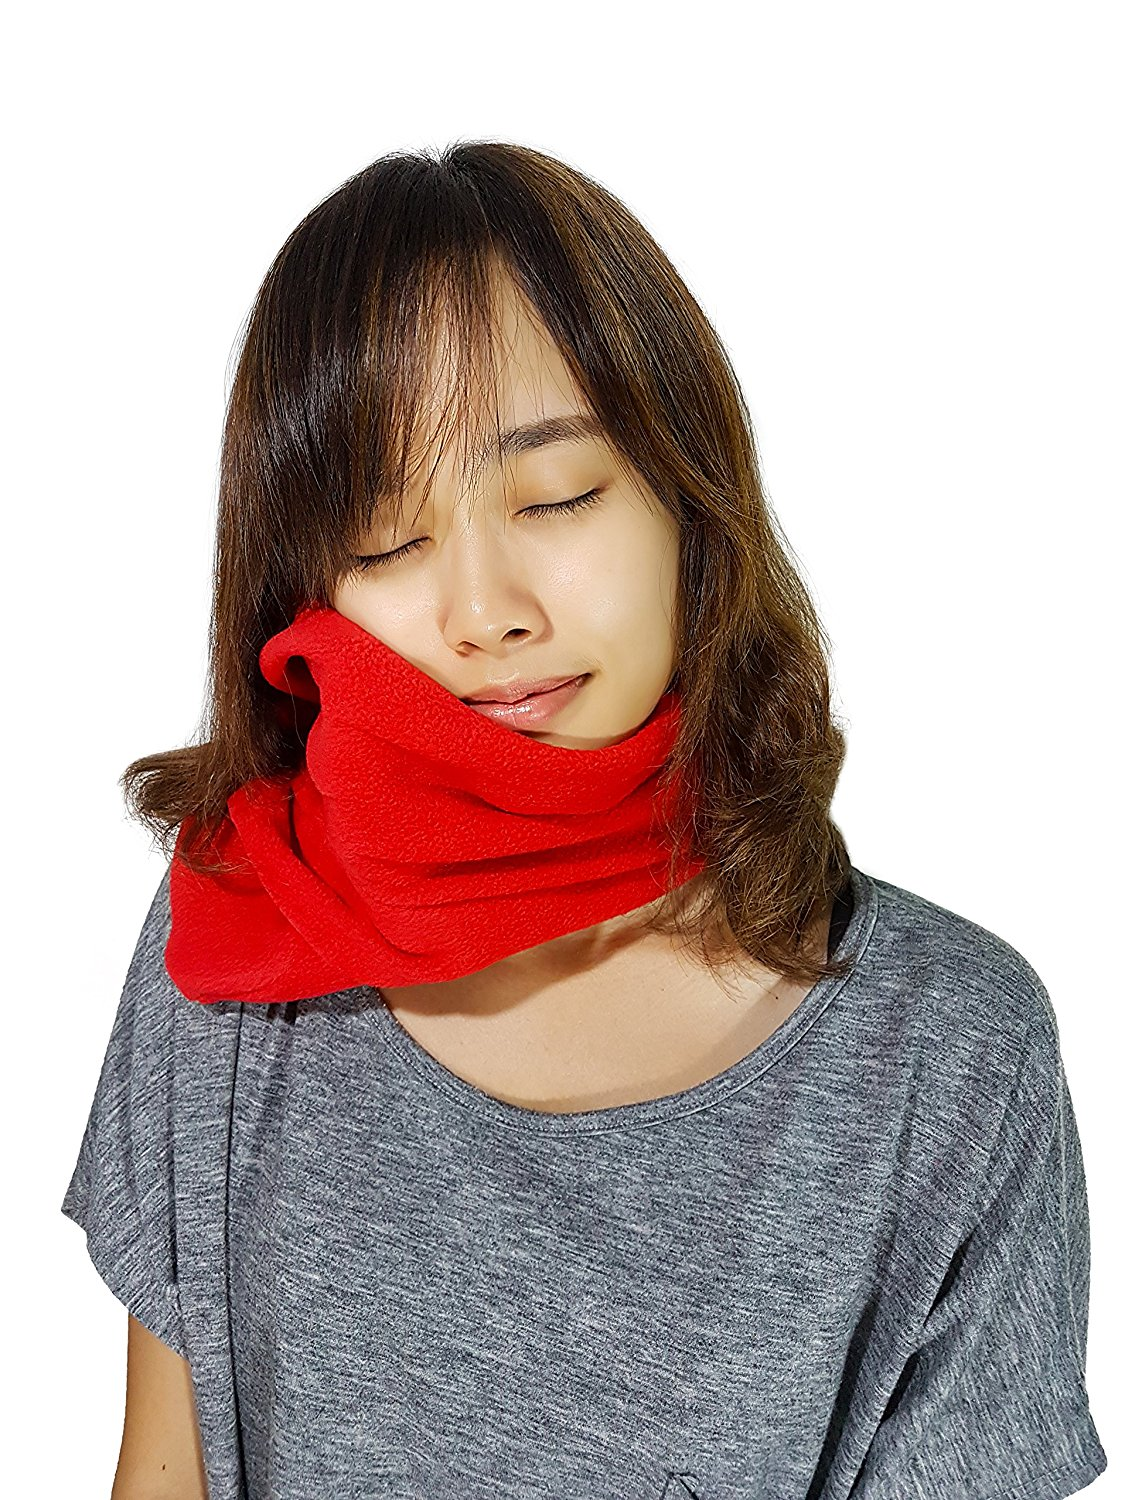 Cheap Red Travel Pillow Find Red Travel Pillow Deals On Line At